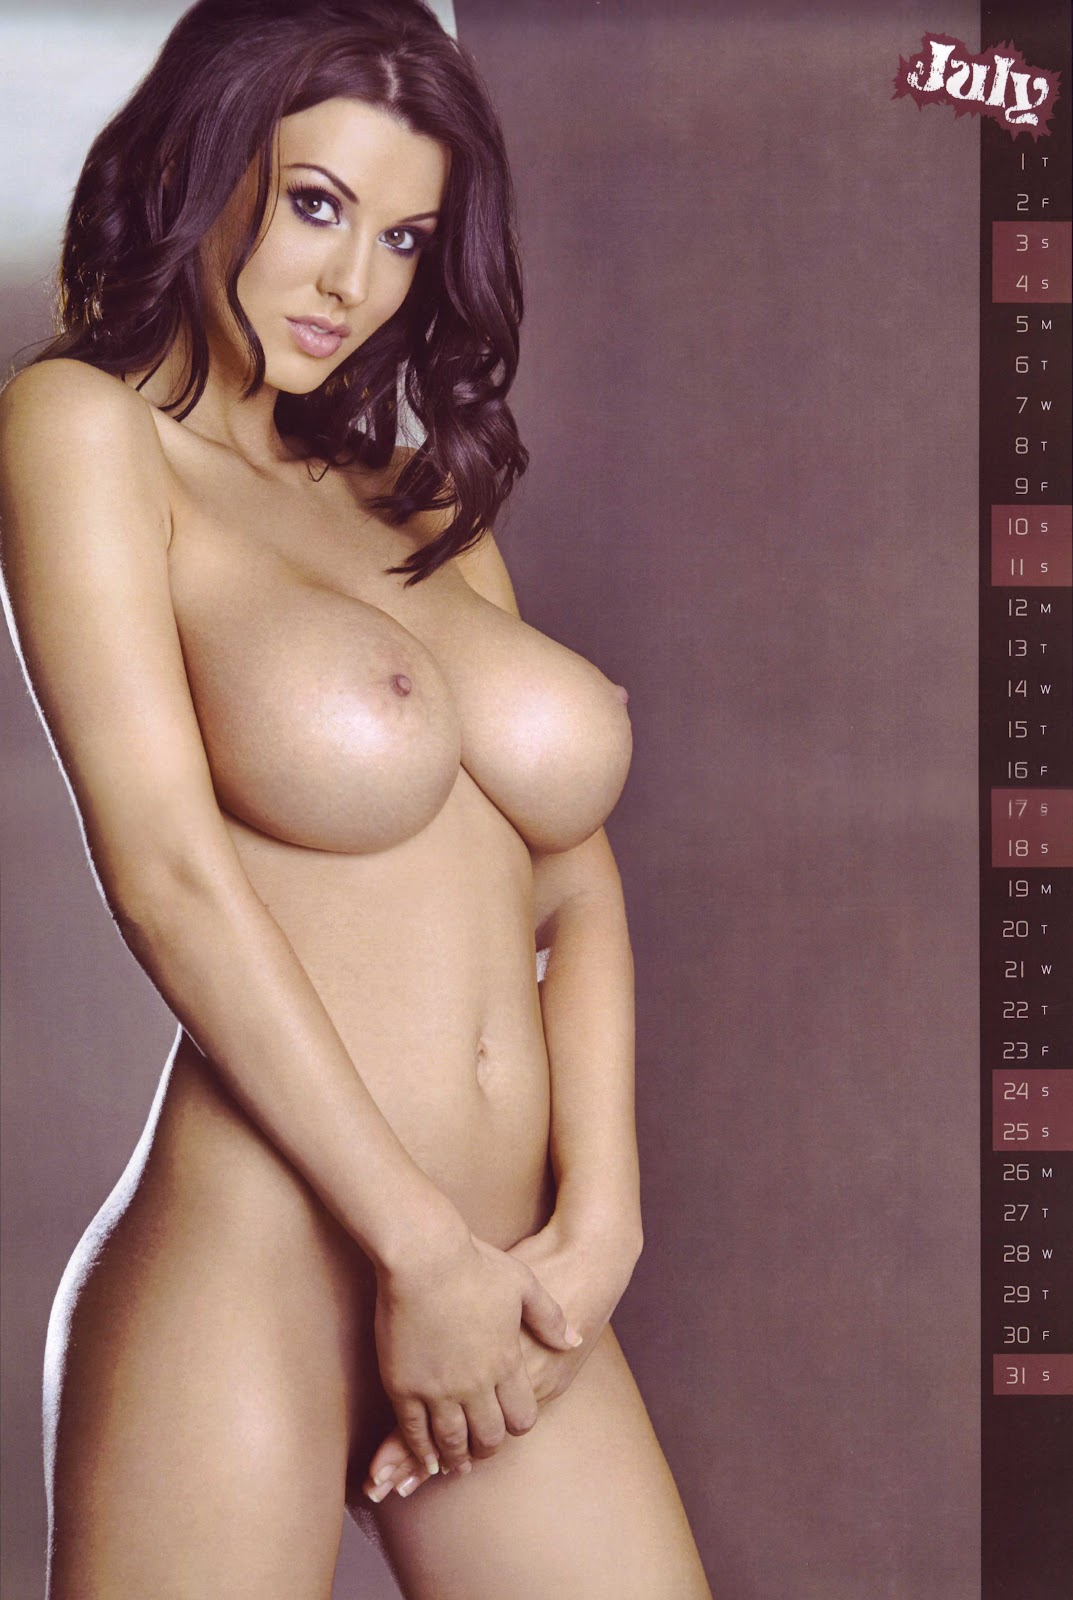 erotic nude page by day calendars jpg 1080x810